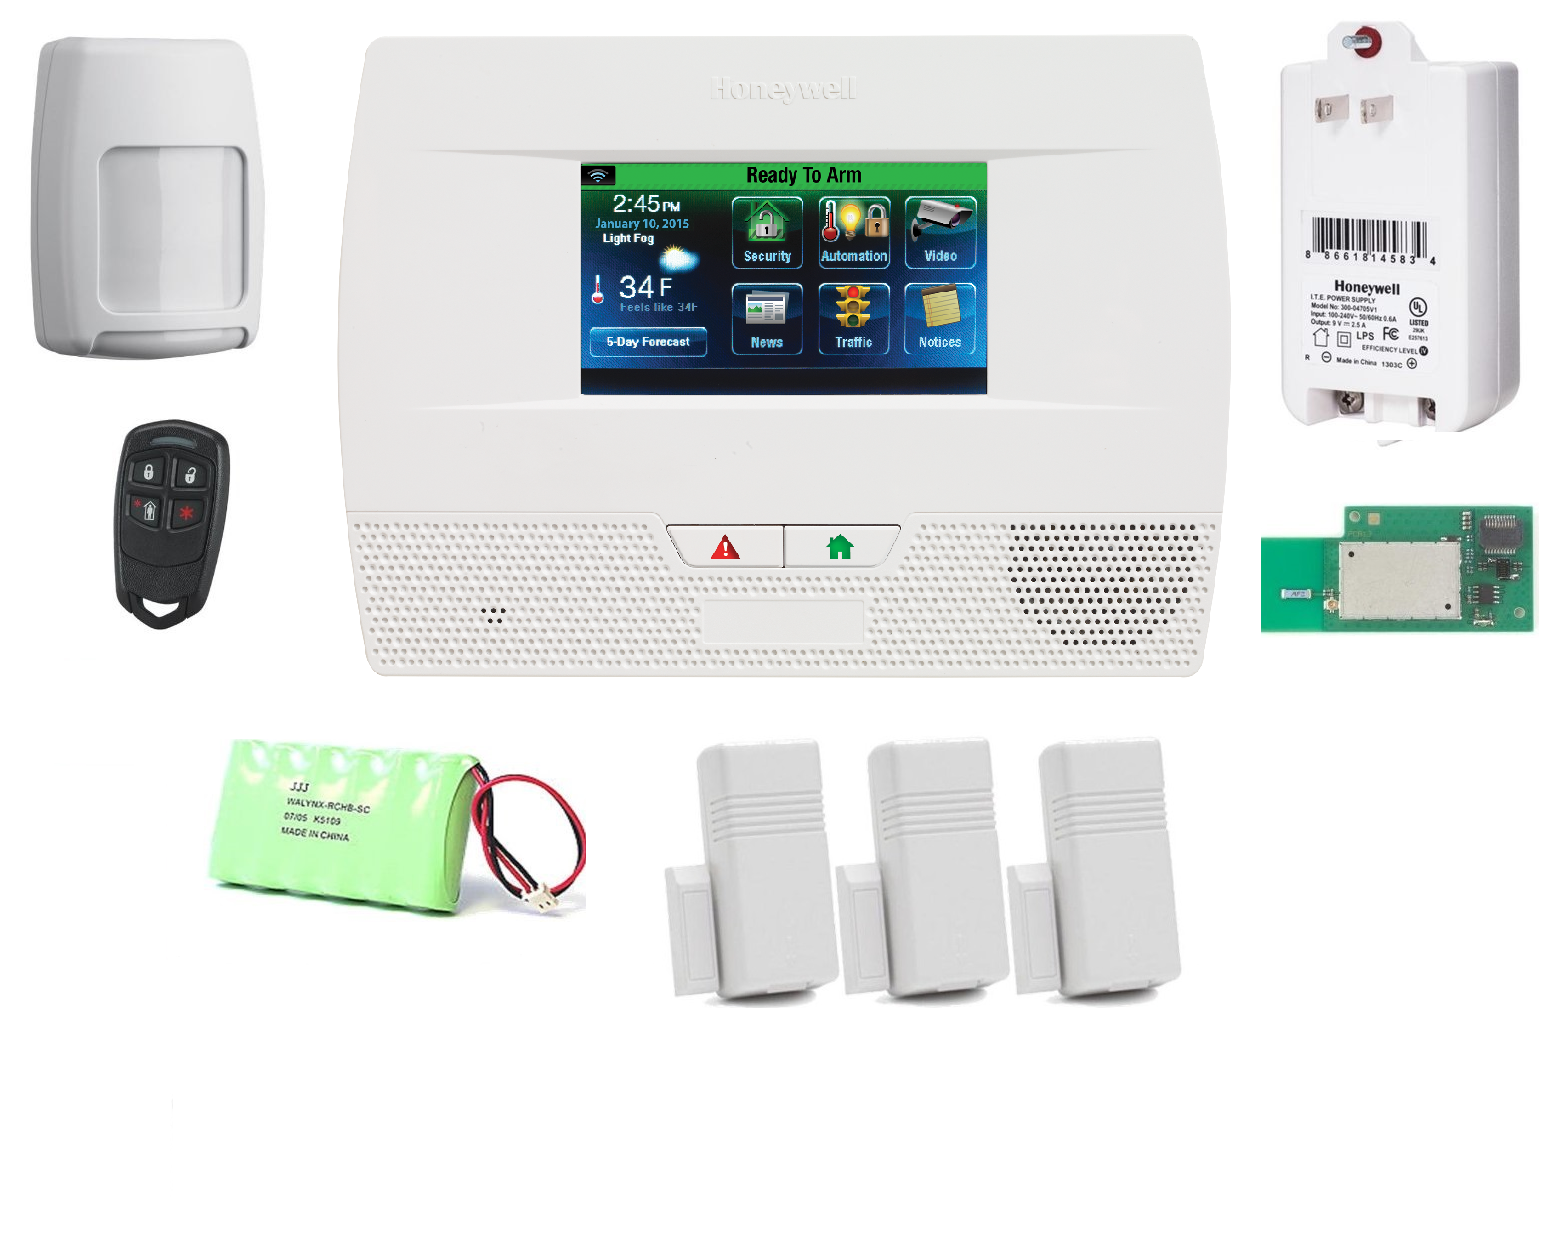 Honeywell L521wf Kt1 L5210 Alarm Kit Wifi Advanced